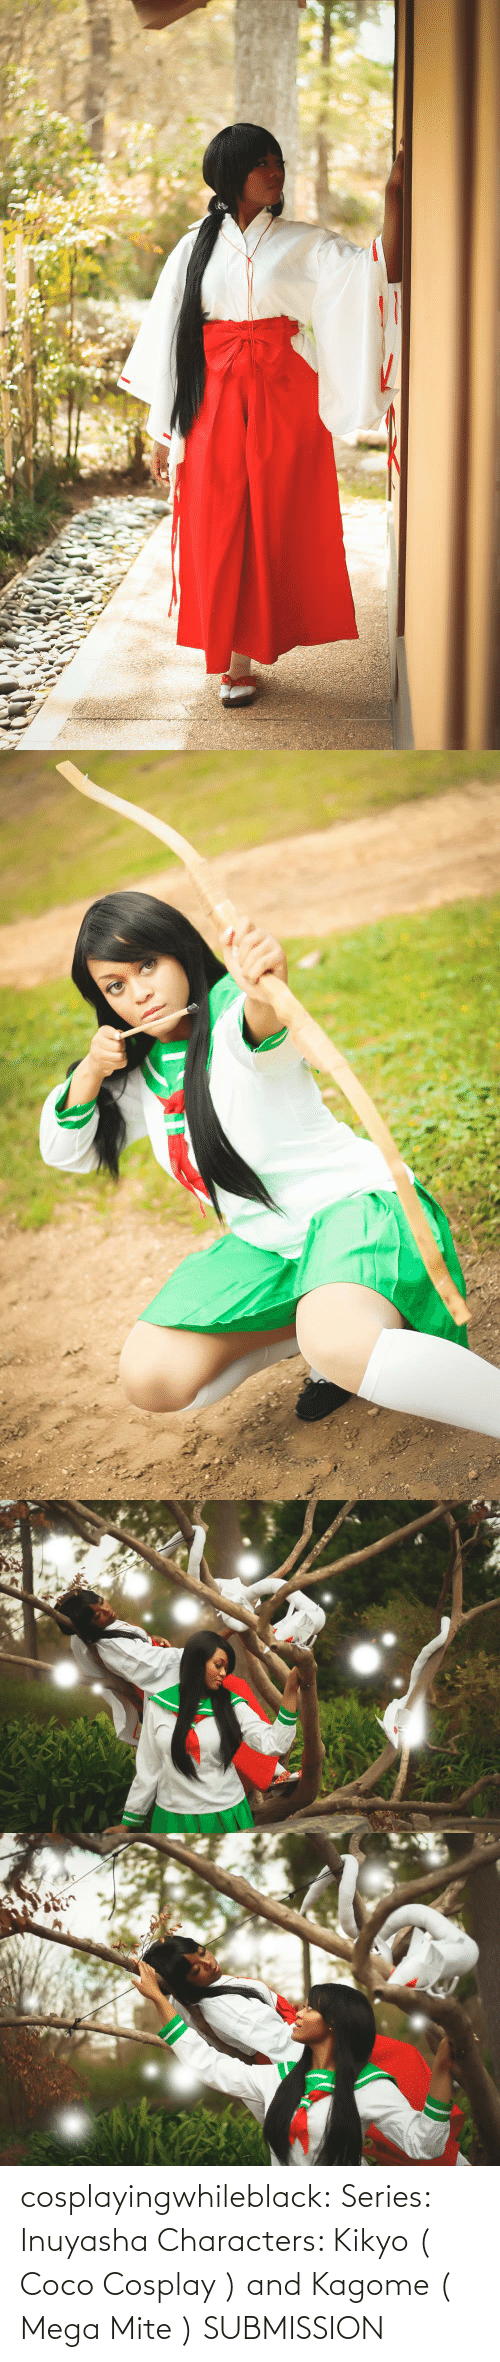 facebook.com: cosplayingwhileblack:    Series: Inuyasha Characters: Kikyo ( Coco Cosplay ) and Kagome ( Mega Mite )   SUBMISSION